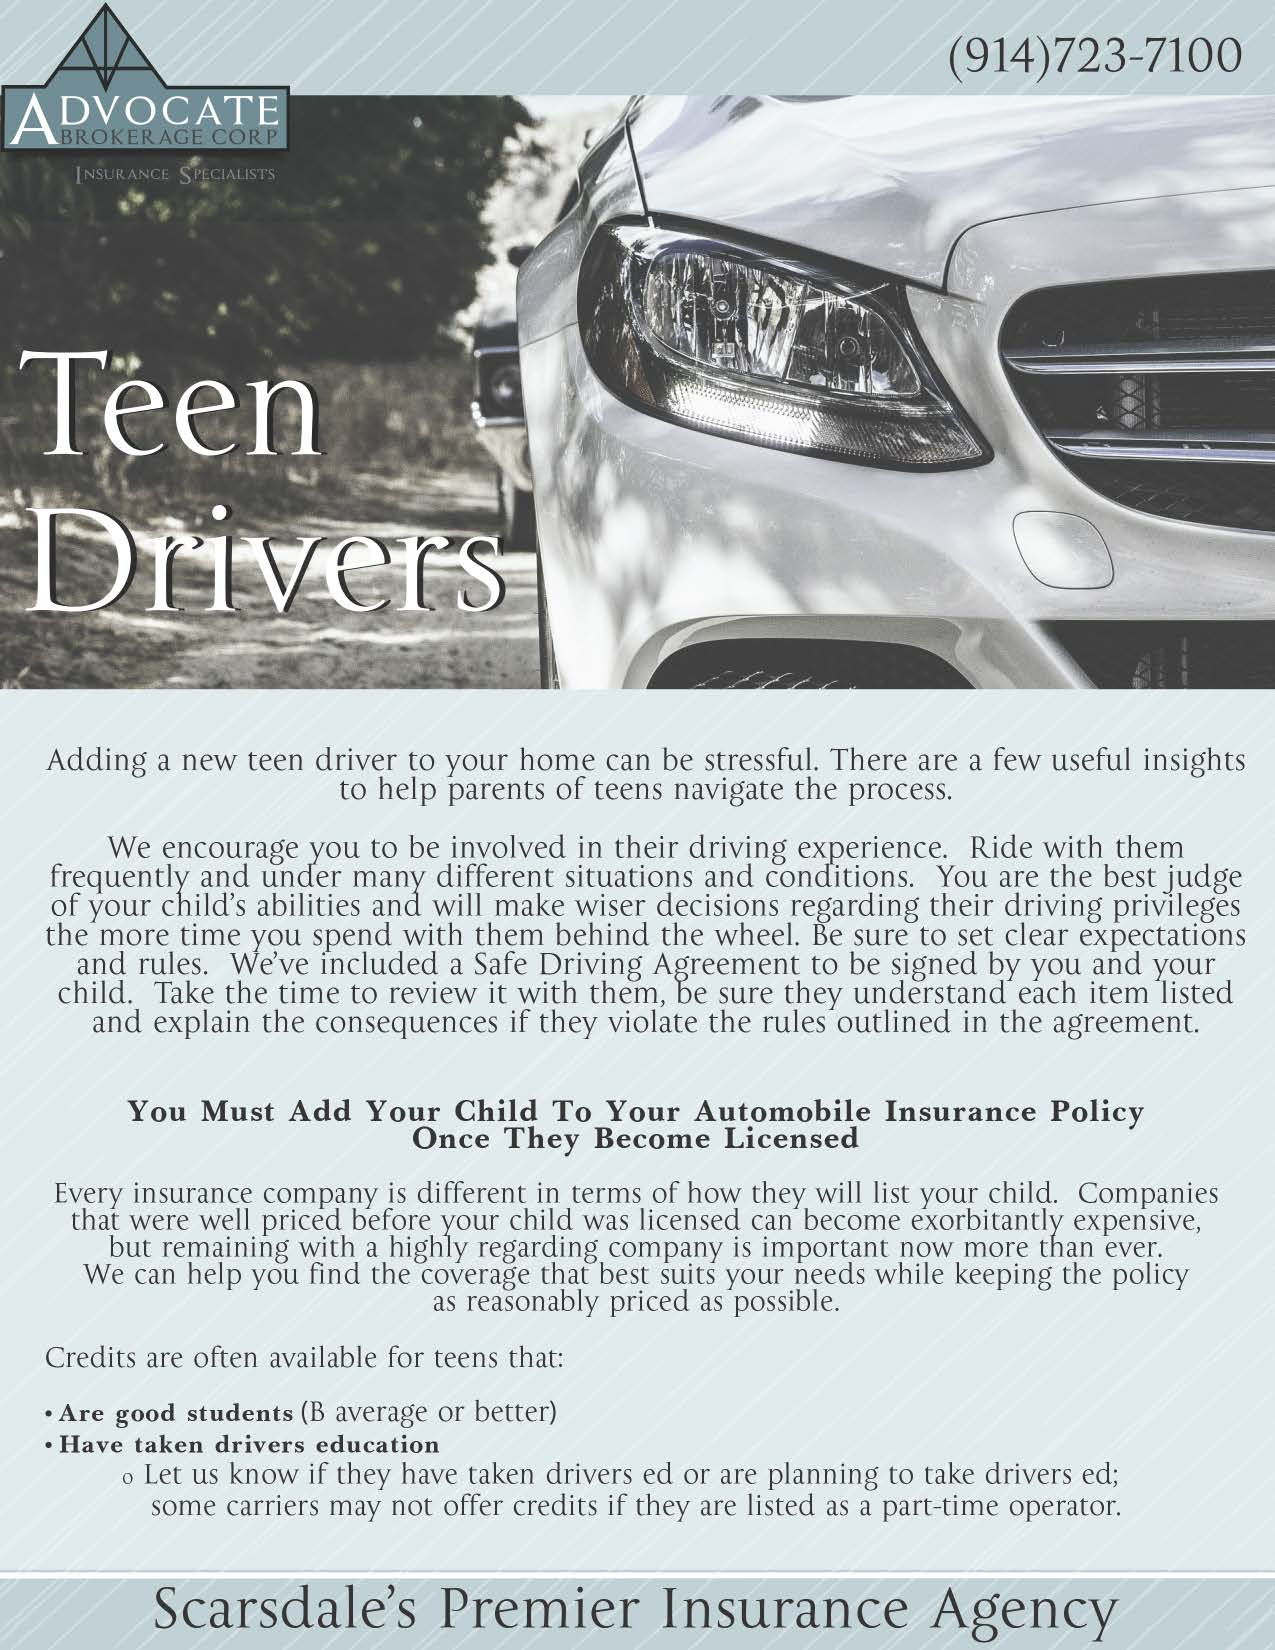 Teen Drivers Guide Scarsdale NY Scarsdale Premier Insurance